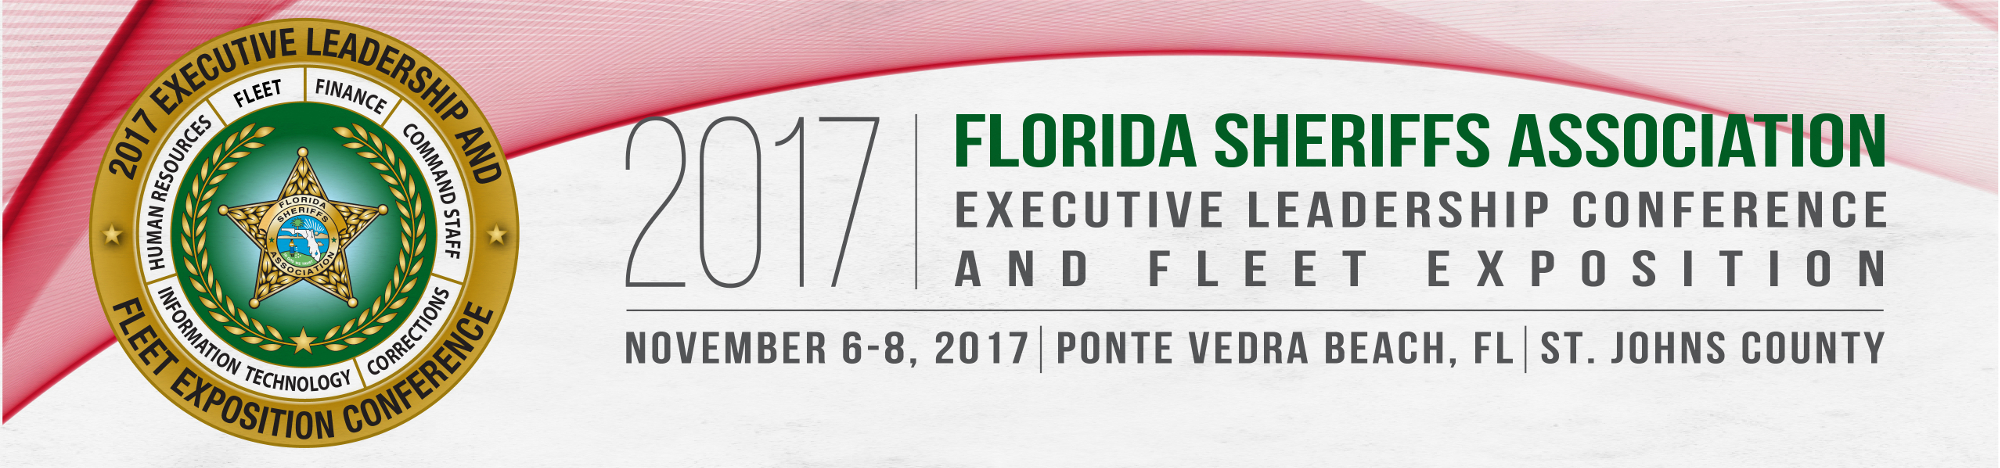 2017 Executive Leadership and Fleet Exposition Conference